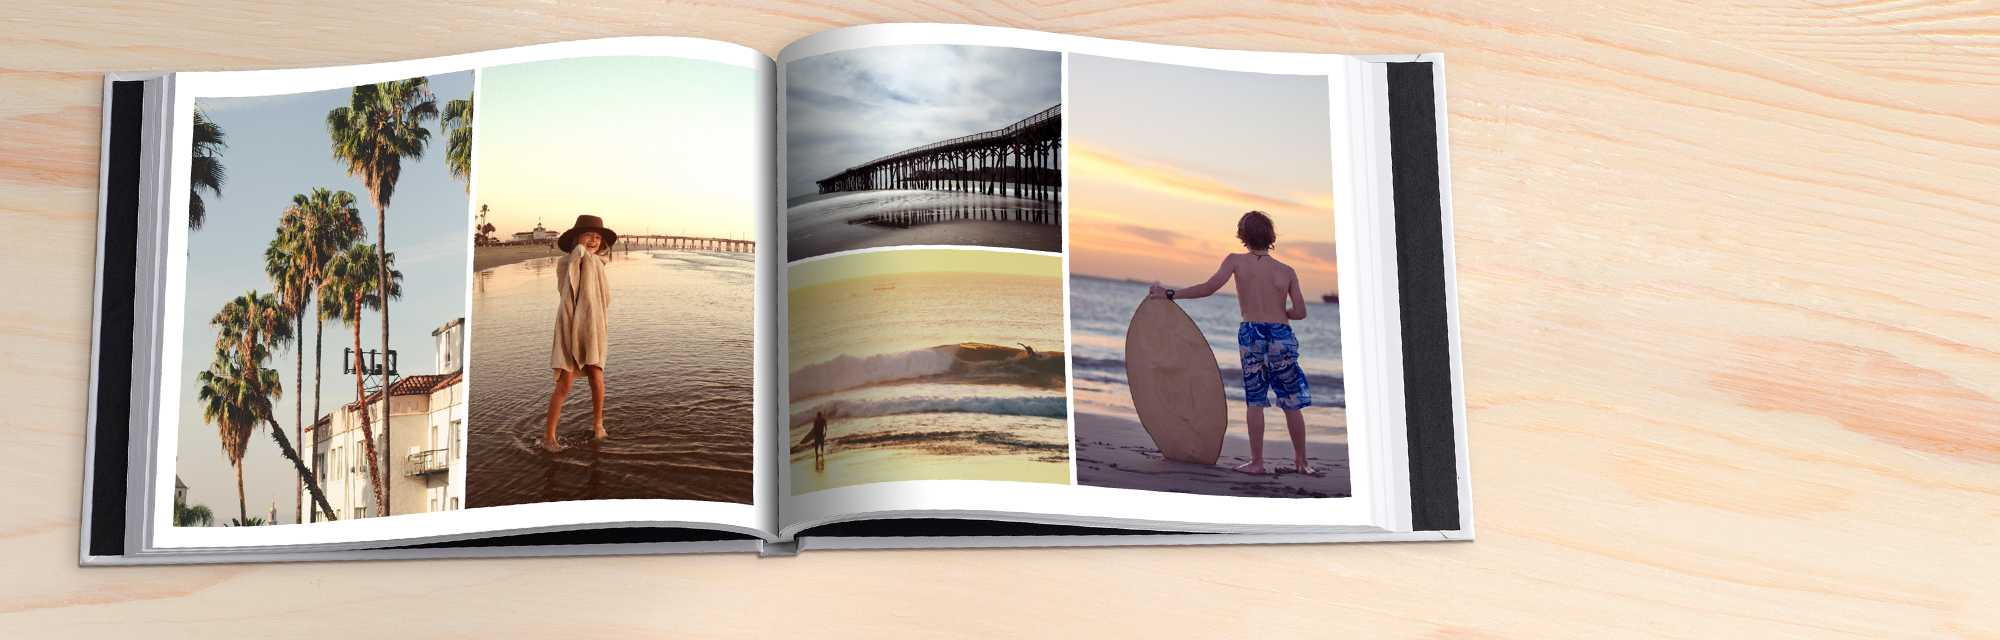 Best Sale of the Season: Save up to 60% OFF when creating hardcover photo books at Shutterfly. Preserve your favorite memories in a beautifully designed photo book. Make yours today!